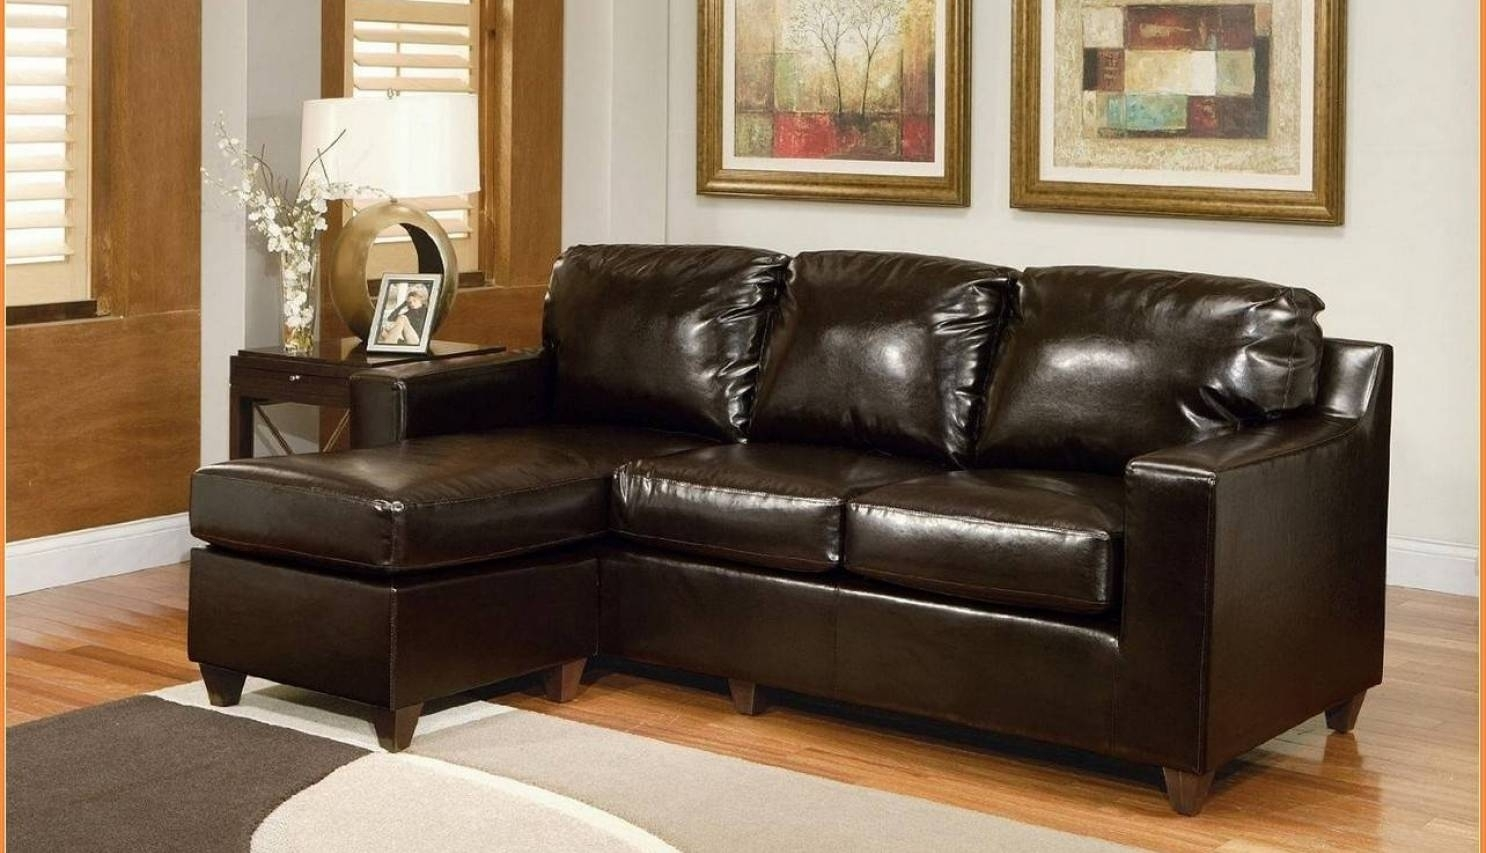 Collection Sectional Sofas Orange County Ca – Mediasupload In Orange County Ca Sectional Sofas (View 4 of 10)